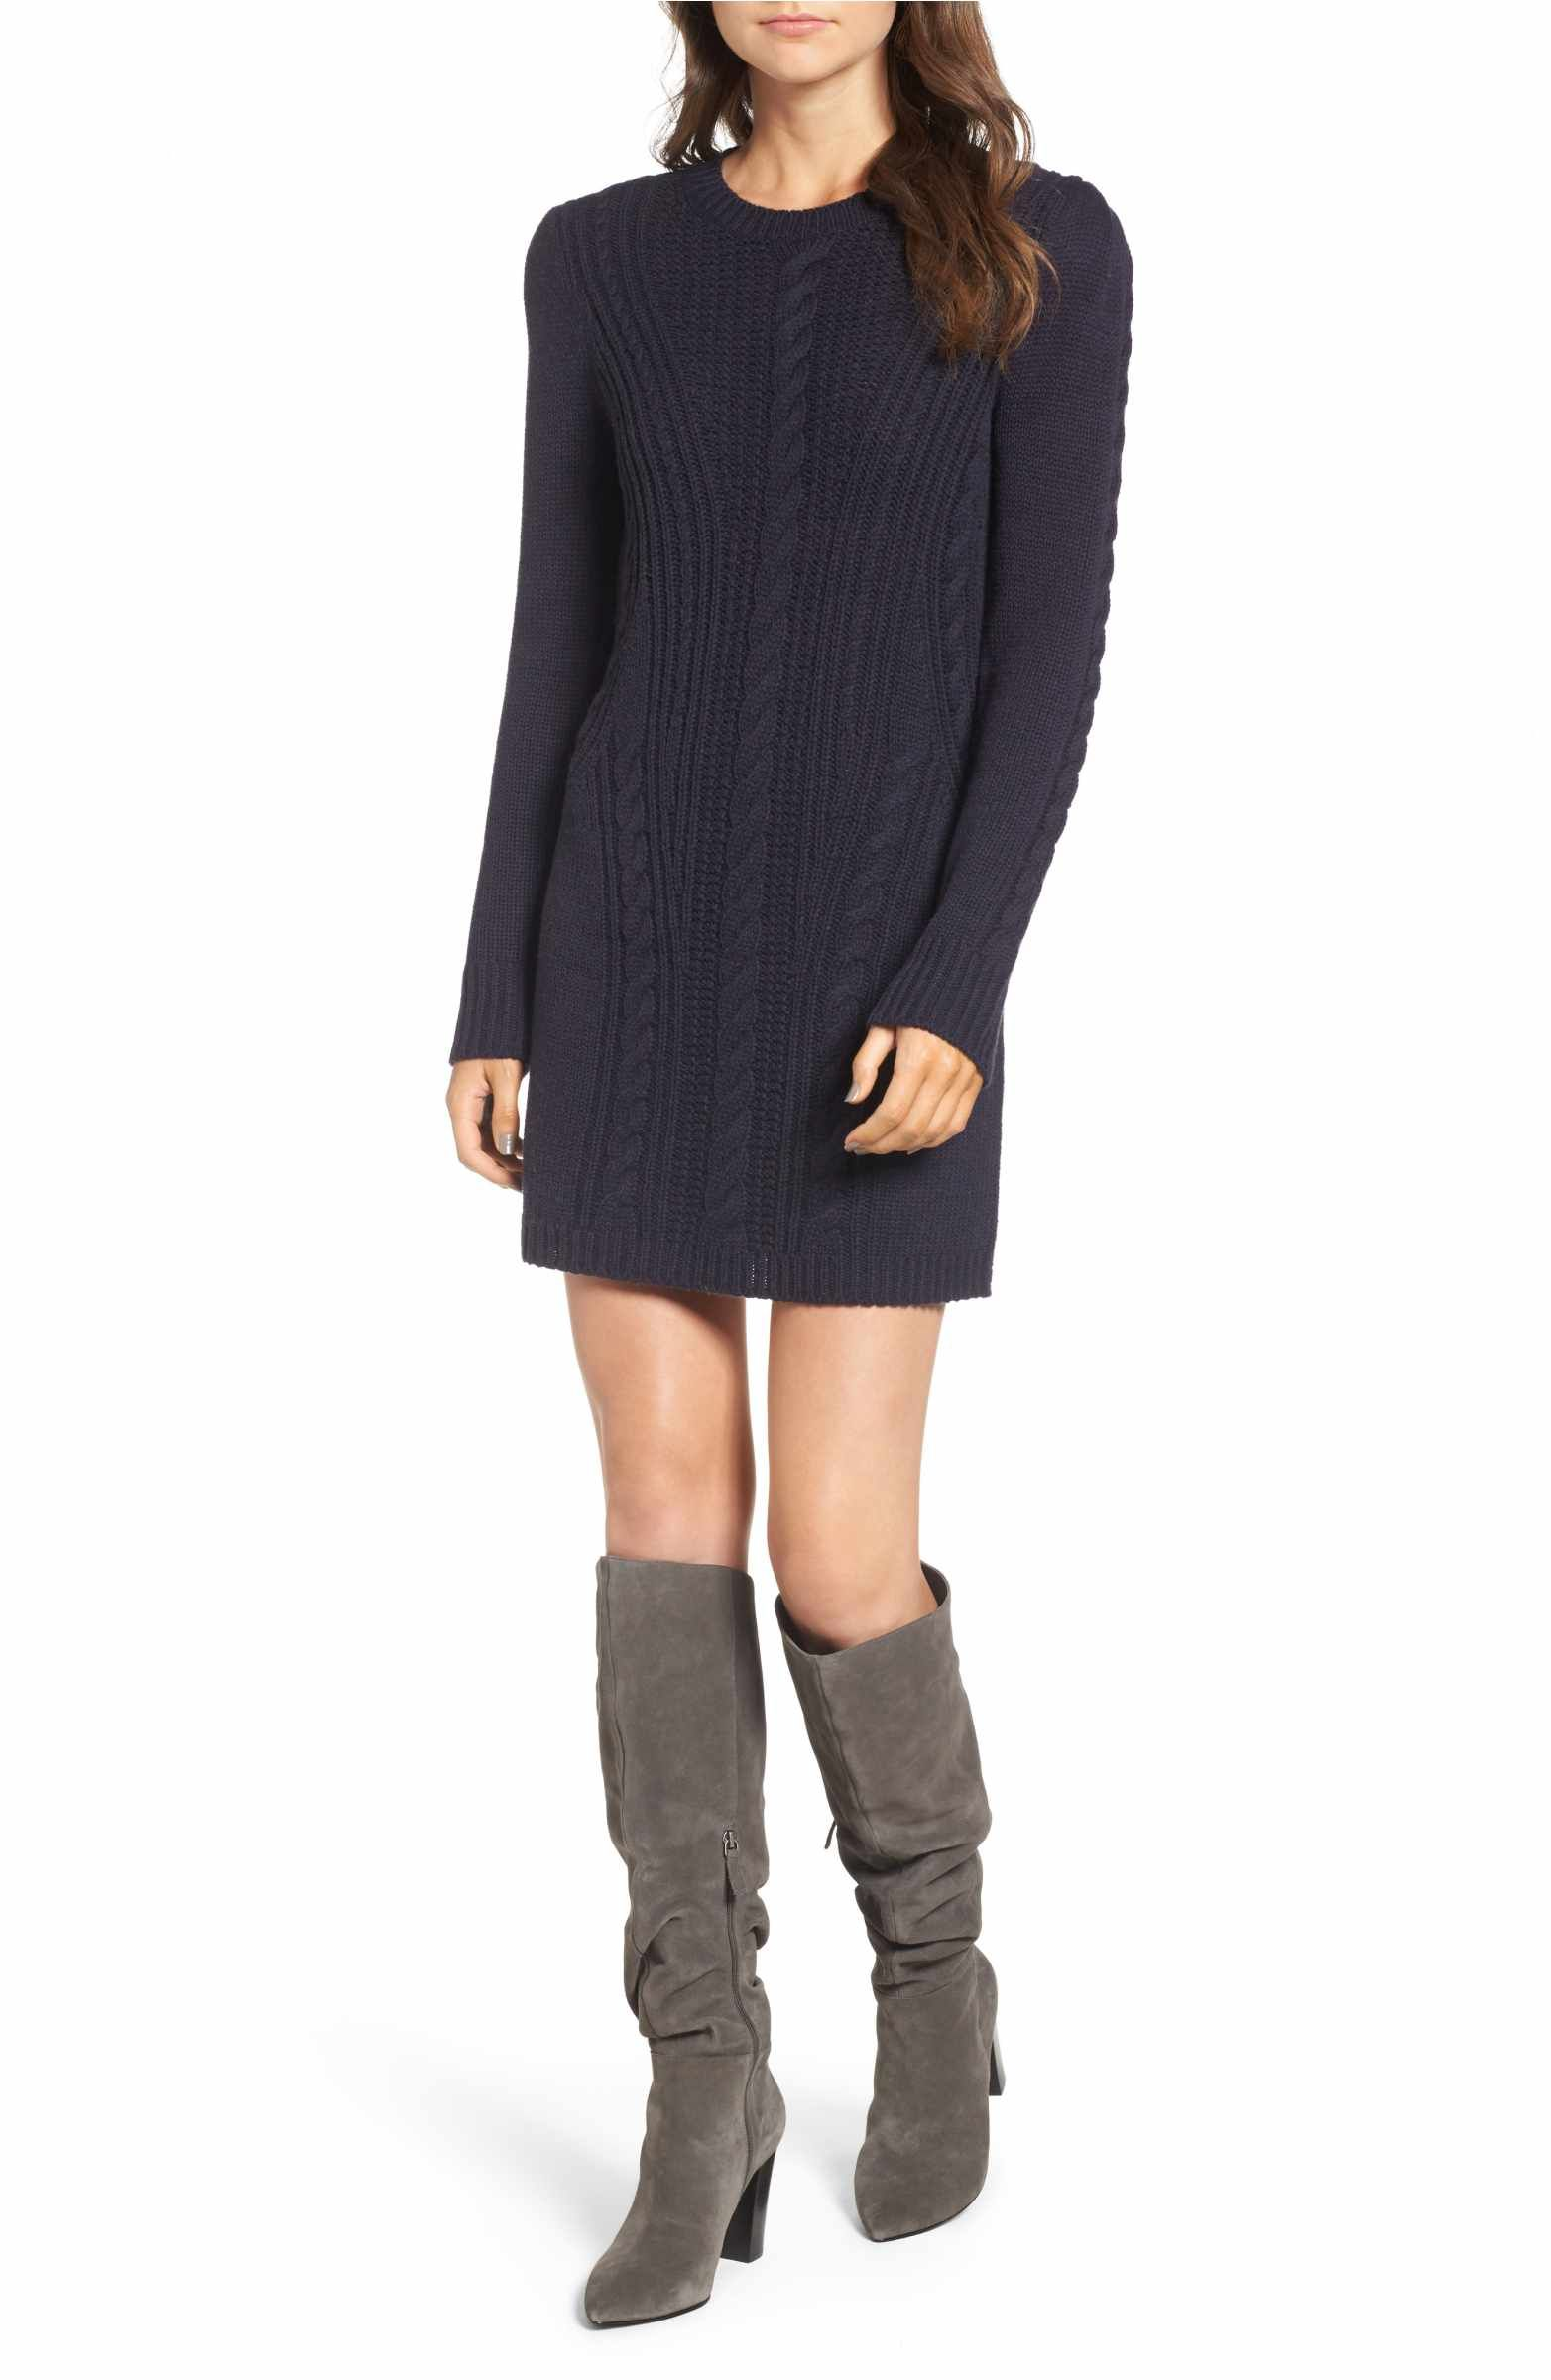 Main Image - Treasure   Bond x Something Navy Sweater Dress   My ... 70f45301042f